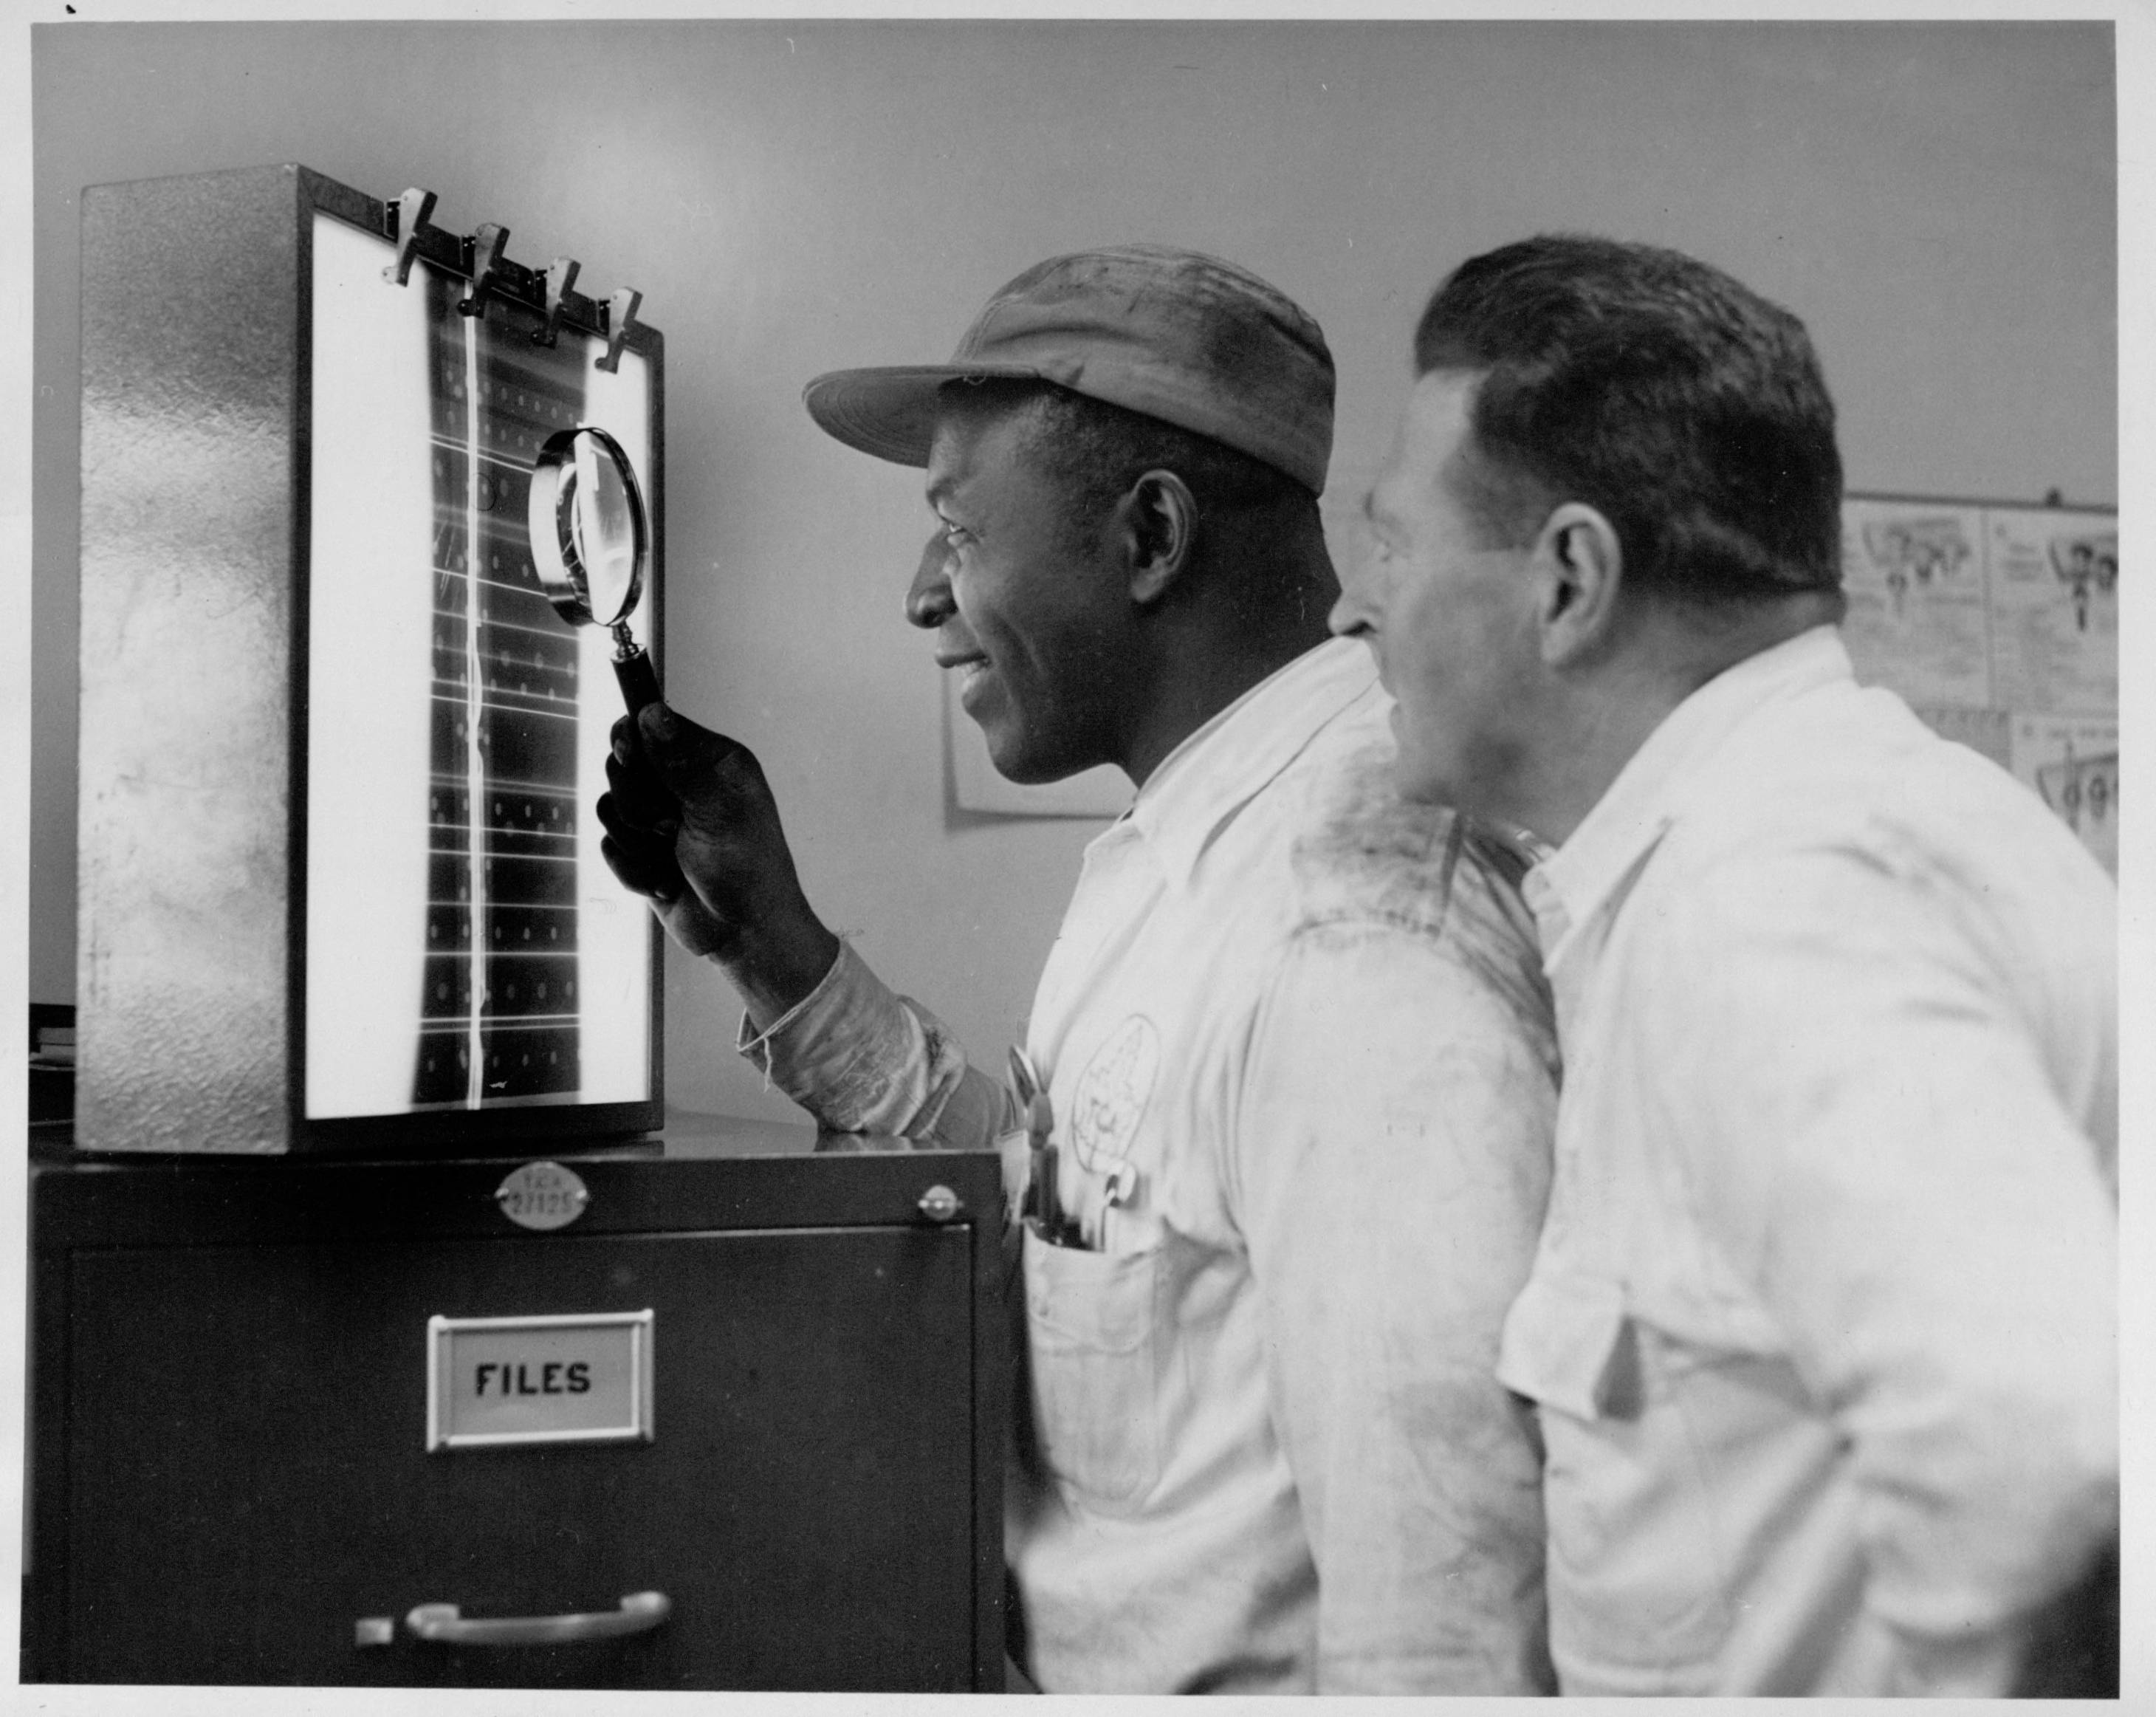 A black and white photo of two men looking at an X-ray film mounted on a viewer, set on top of a file cabinet.